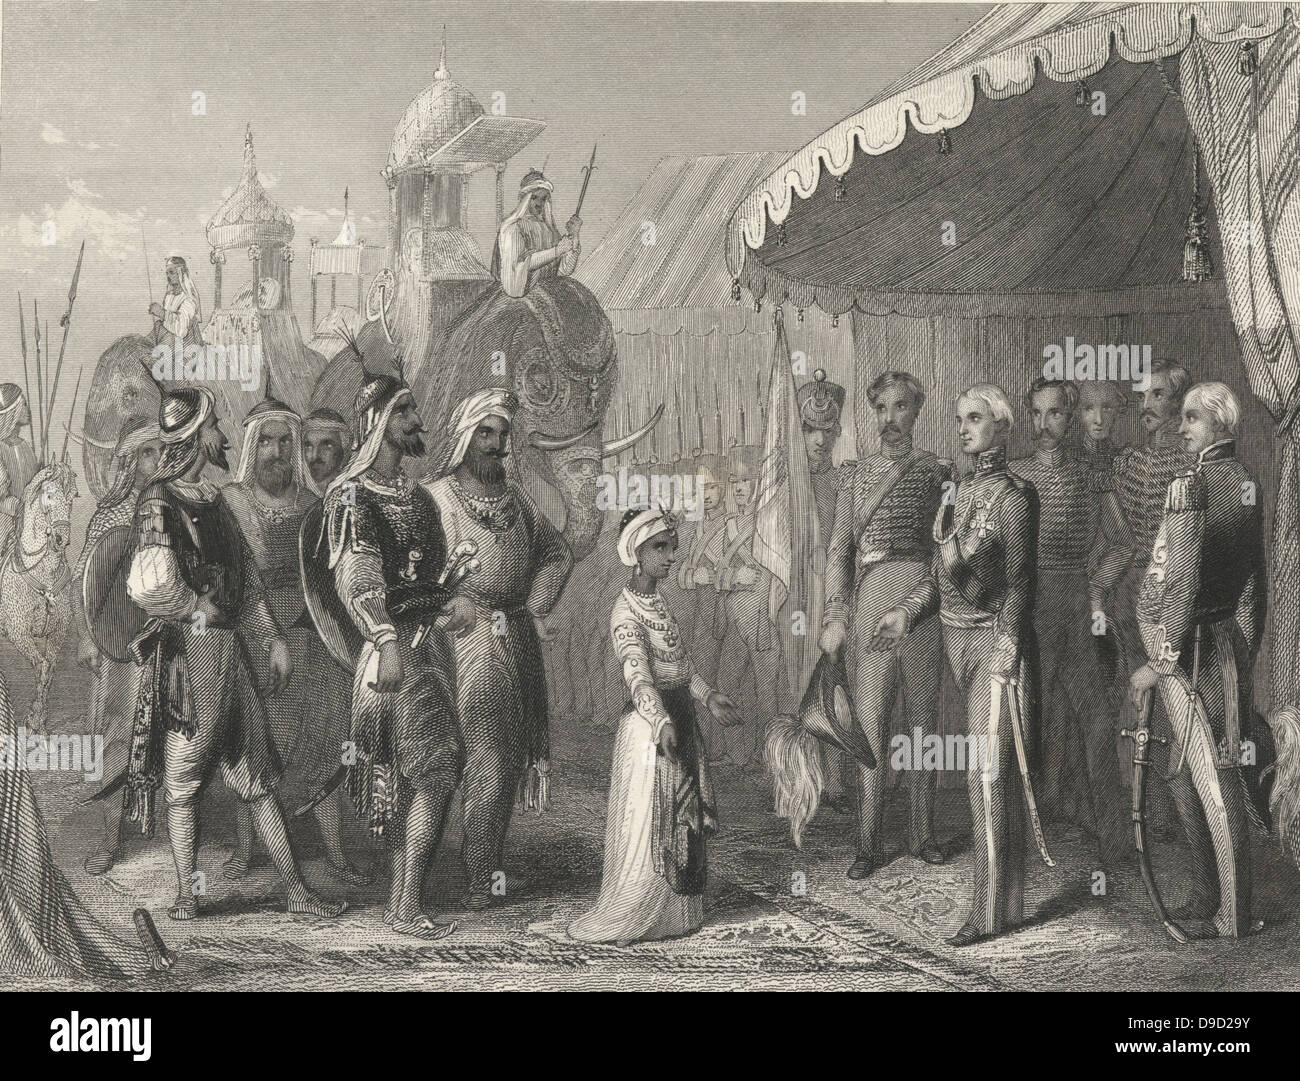 First Anglo-Sikh War 1845-1846: Maharaja Duleep Singh (1838-1893)  submitting to Sir Henry Hardinge, Governor-General of India,